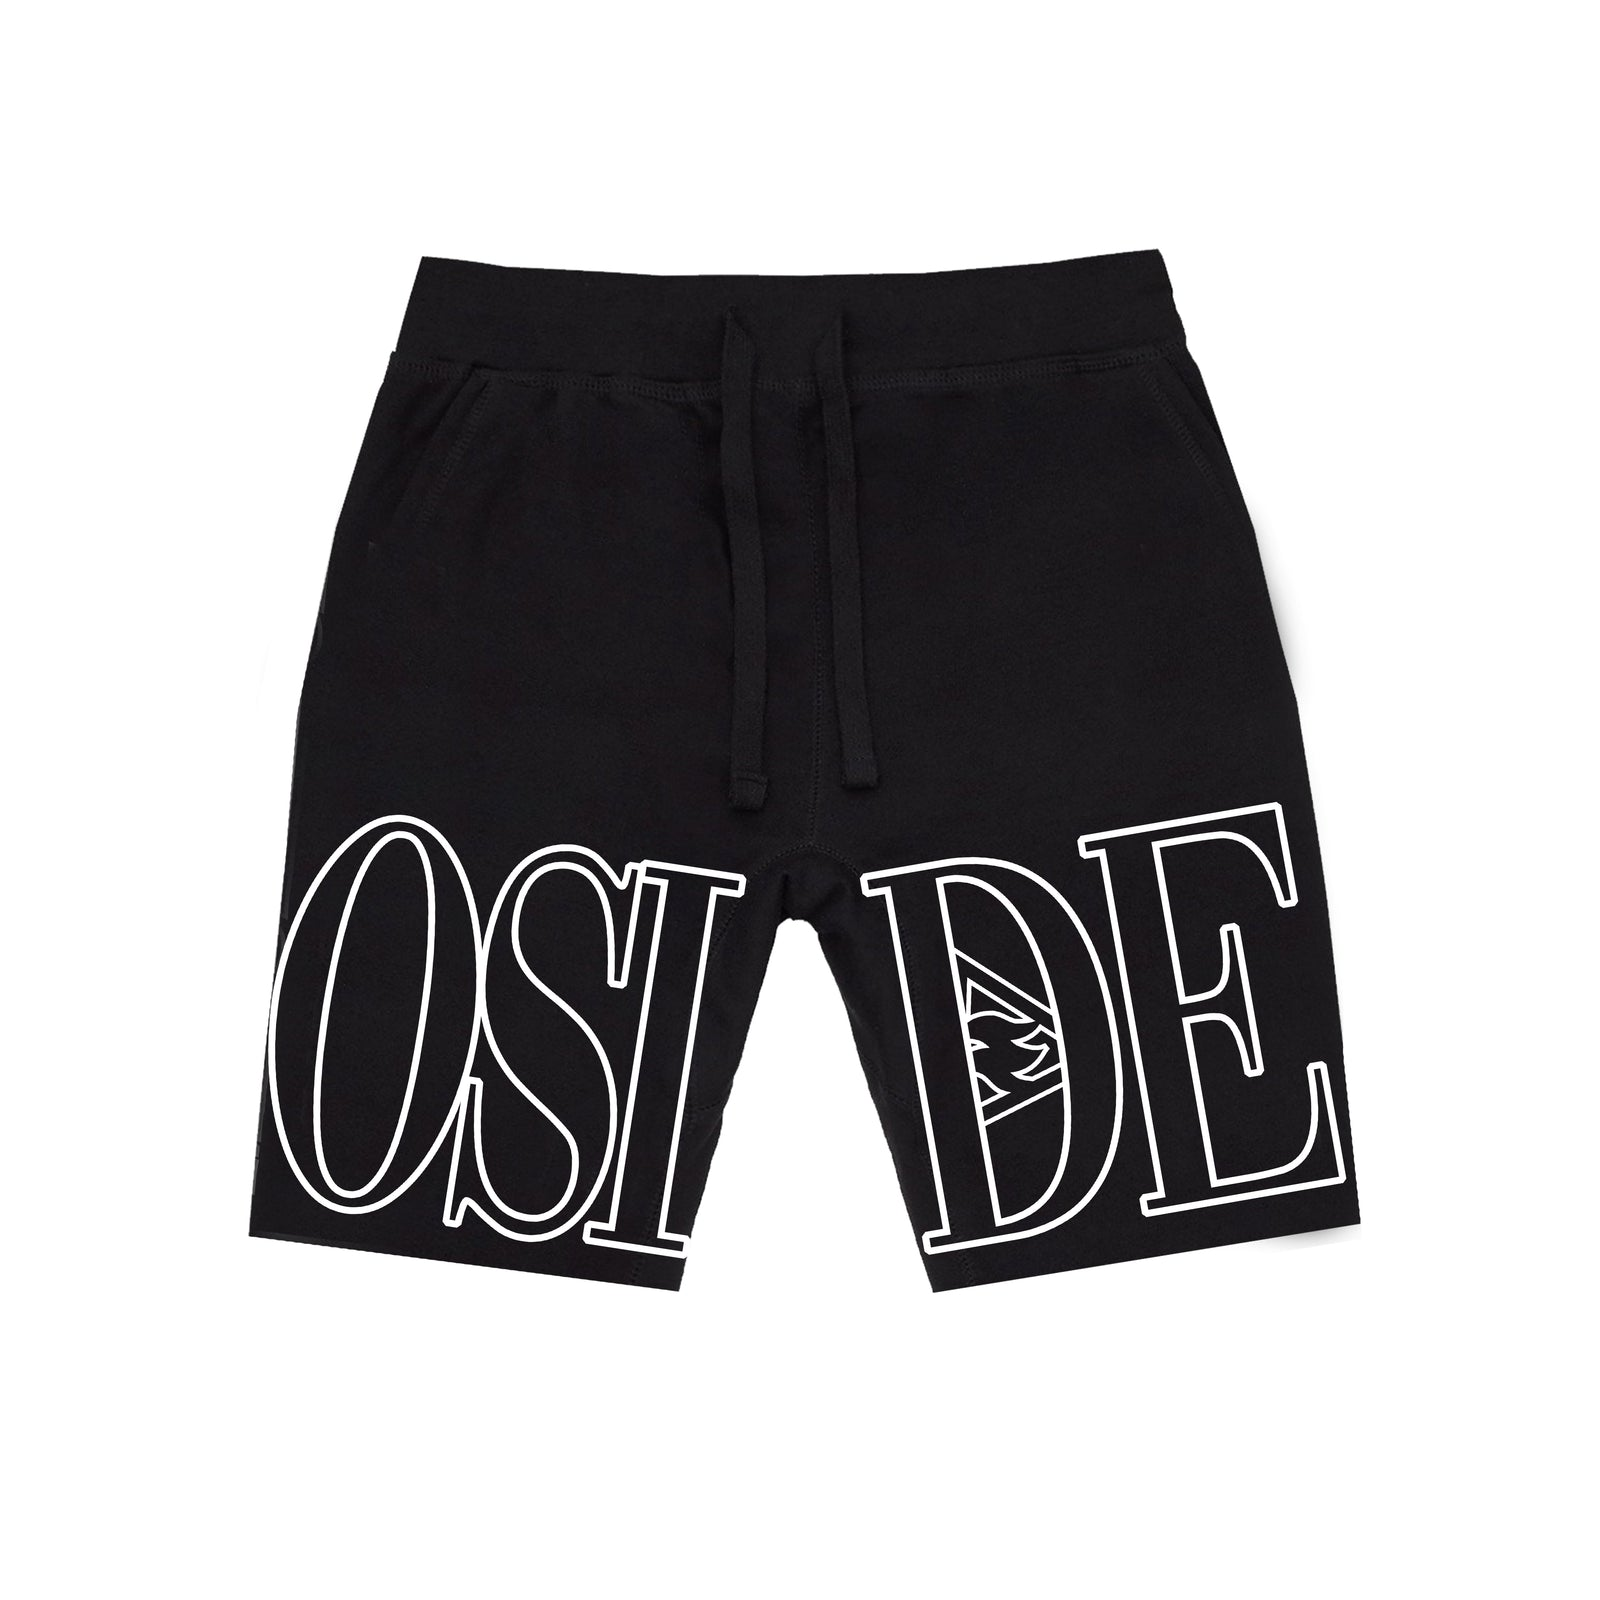 OSIDE HEAT SWEAT SHORTS (Matte Colorway)